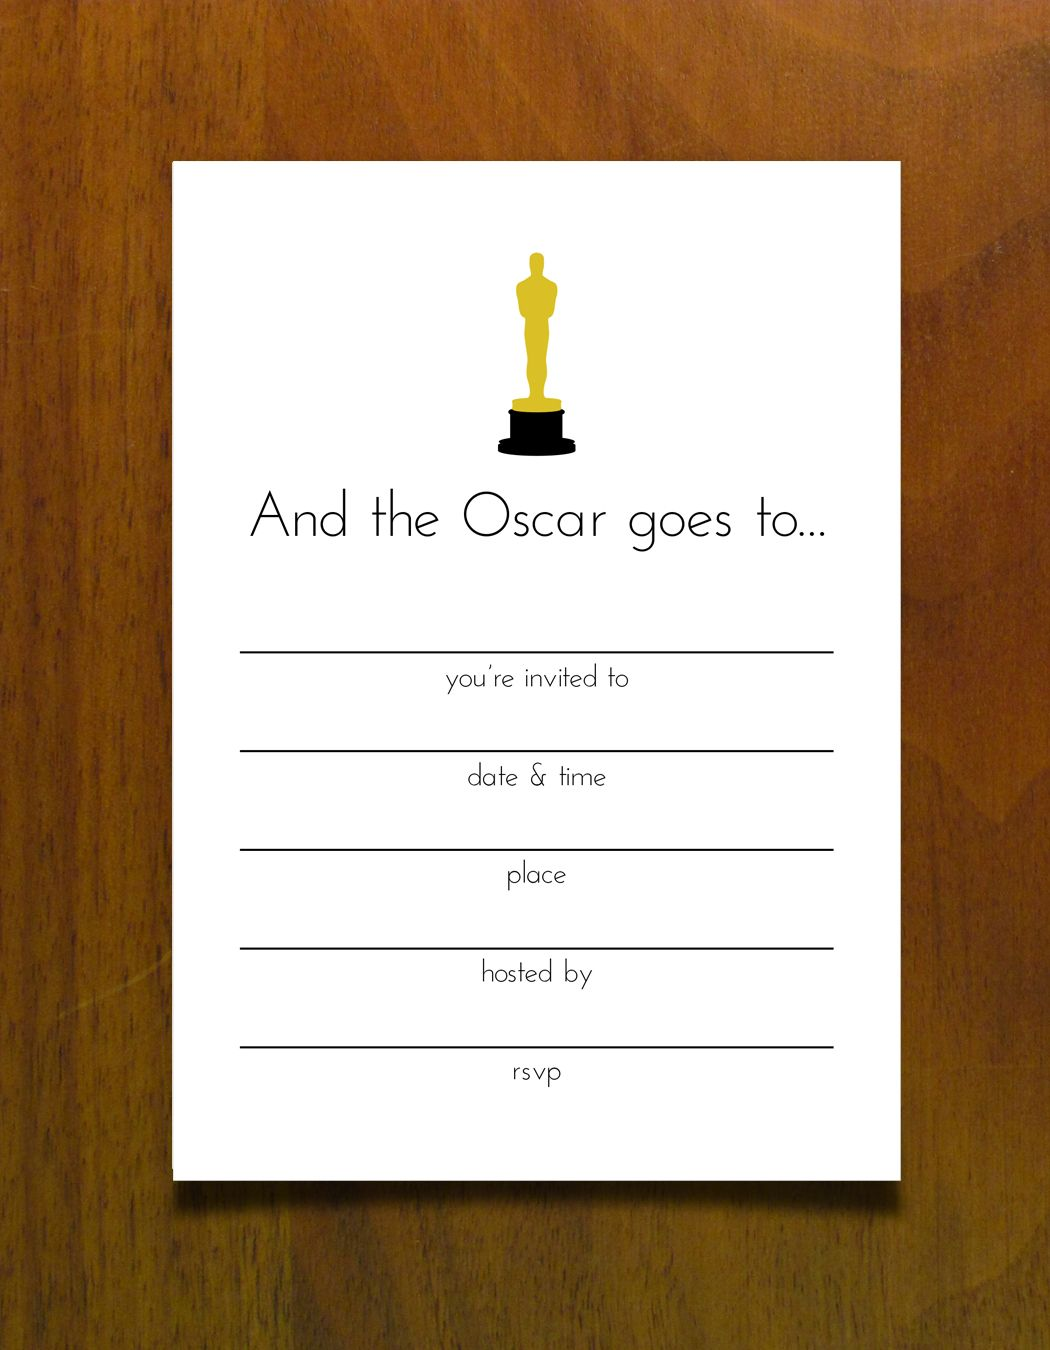 Seasonal academy awards together with A Bug E2 80 99s Life Collector E2 80 99s Edition also Story MAJ0rQr1y7haivYCDlBb1J furthermore Sally Field Oscar Memories furthermore Oscars 2017 Envelope Memes. on academy award envelope